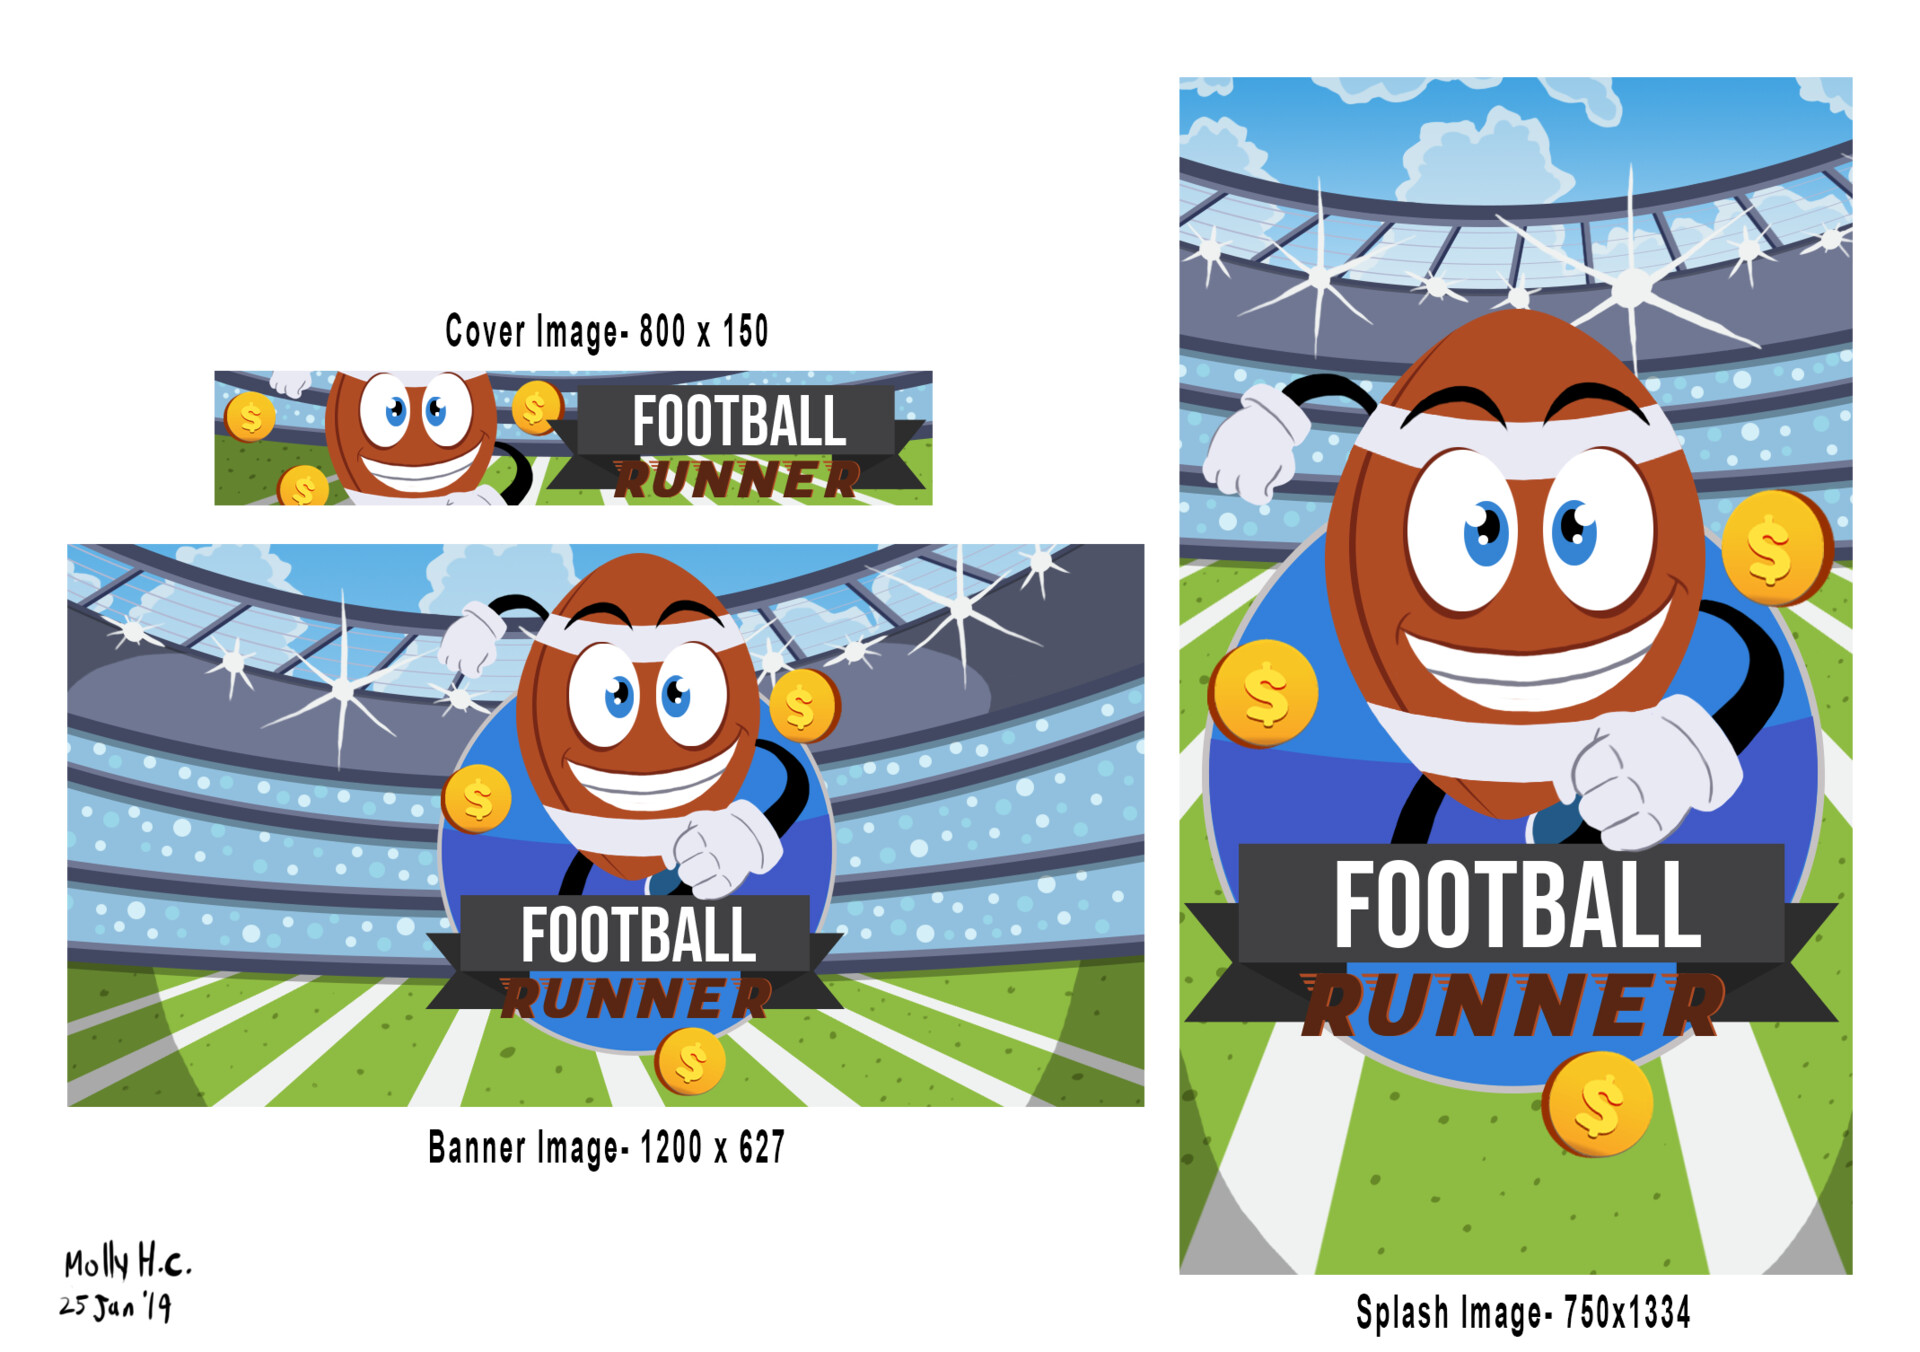 Football Runner App Promo Art Final Deliverables